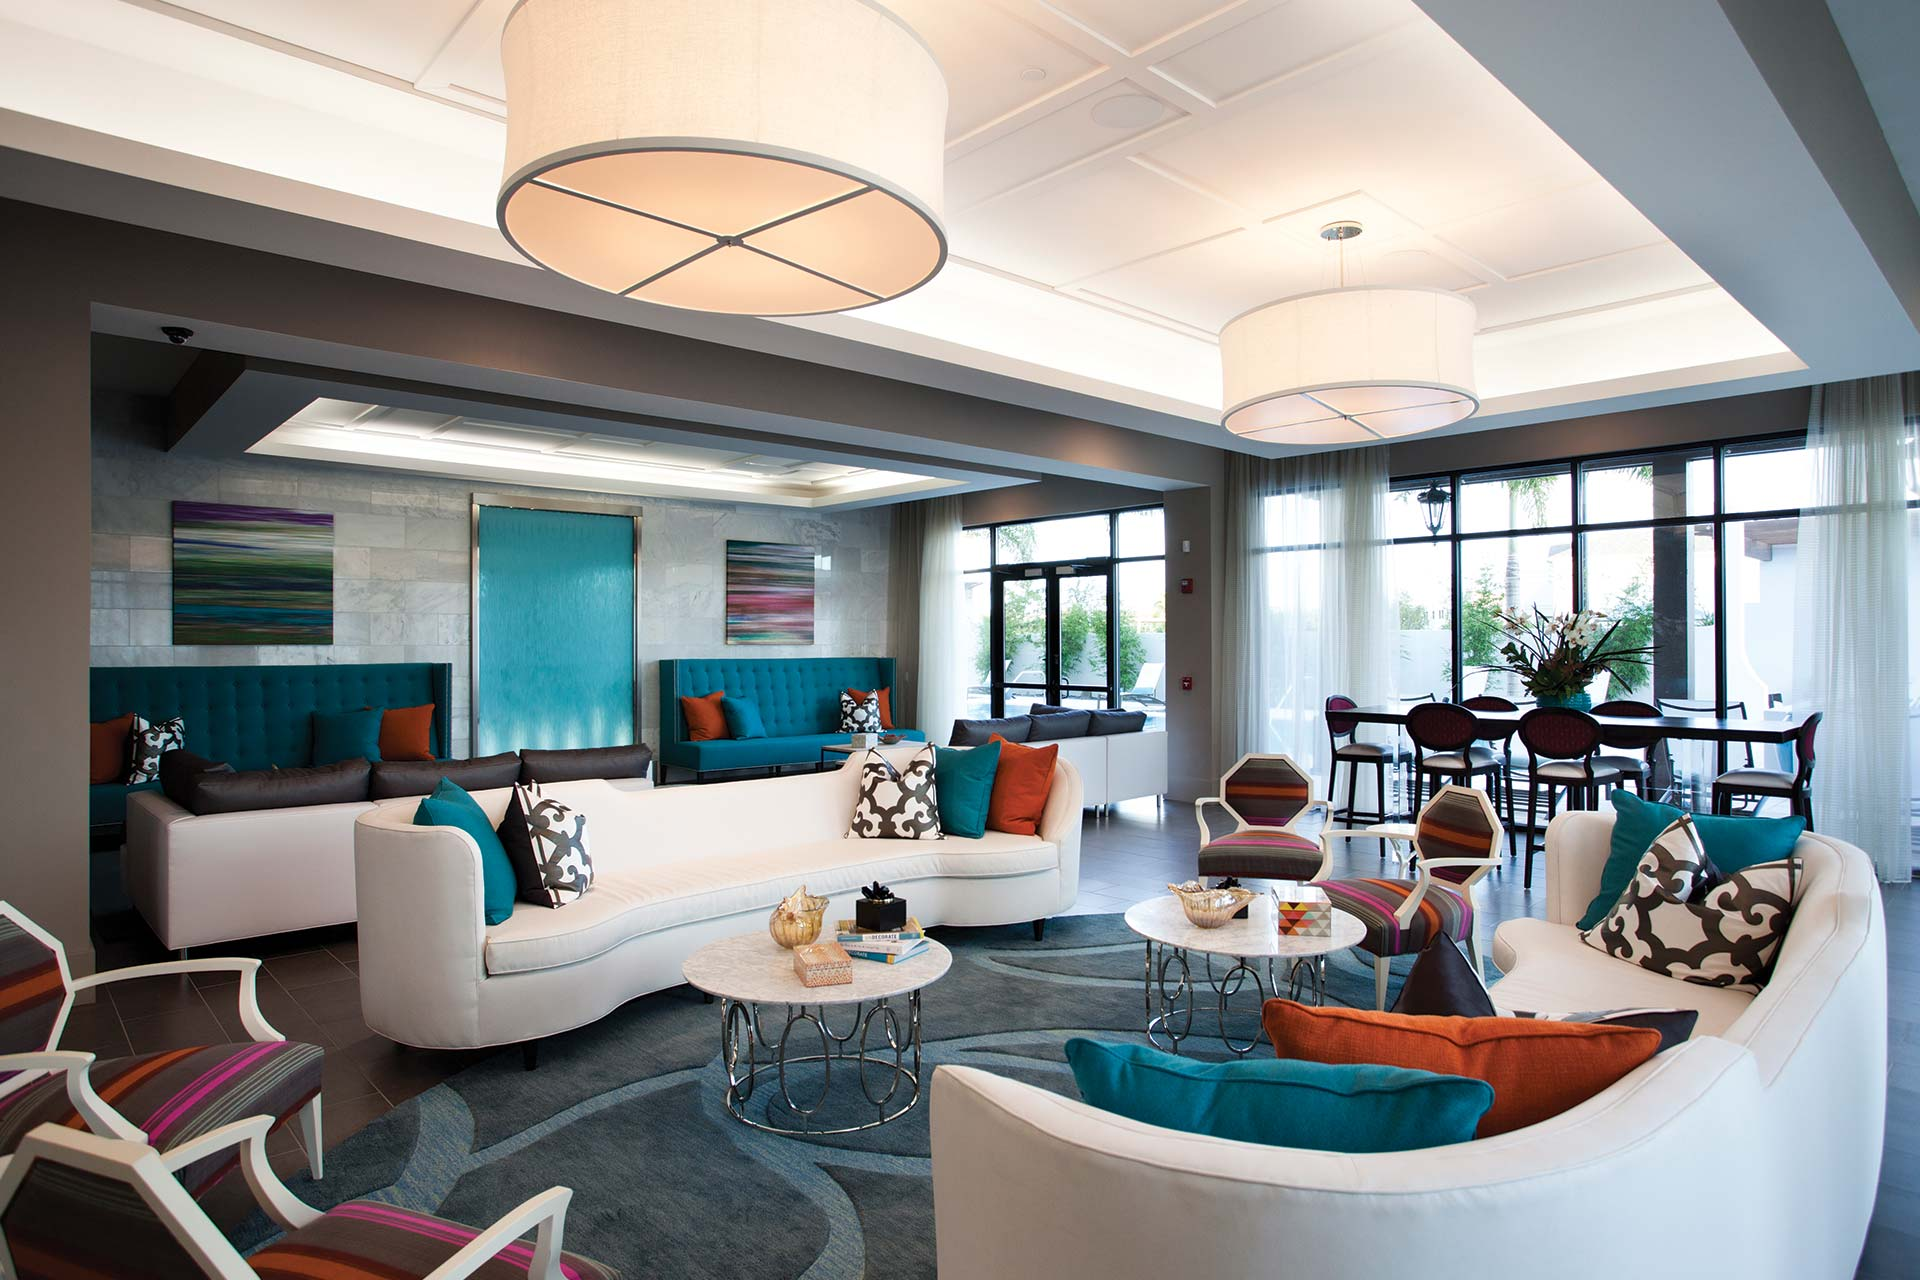 azul resident lounge with social seating, cocktail tables, bench seating and modern lighting - jefferson apartment group